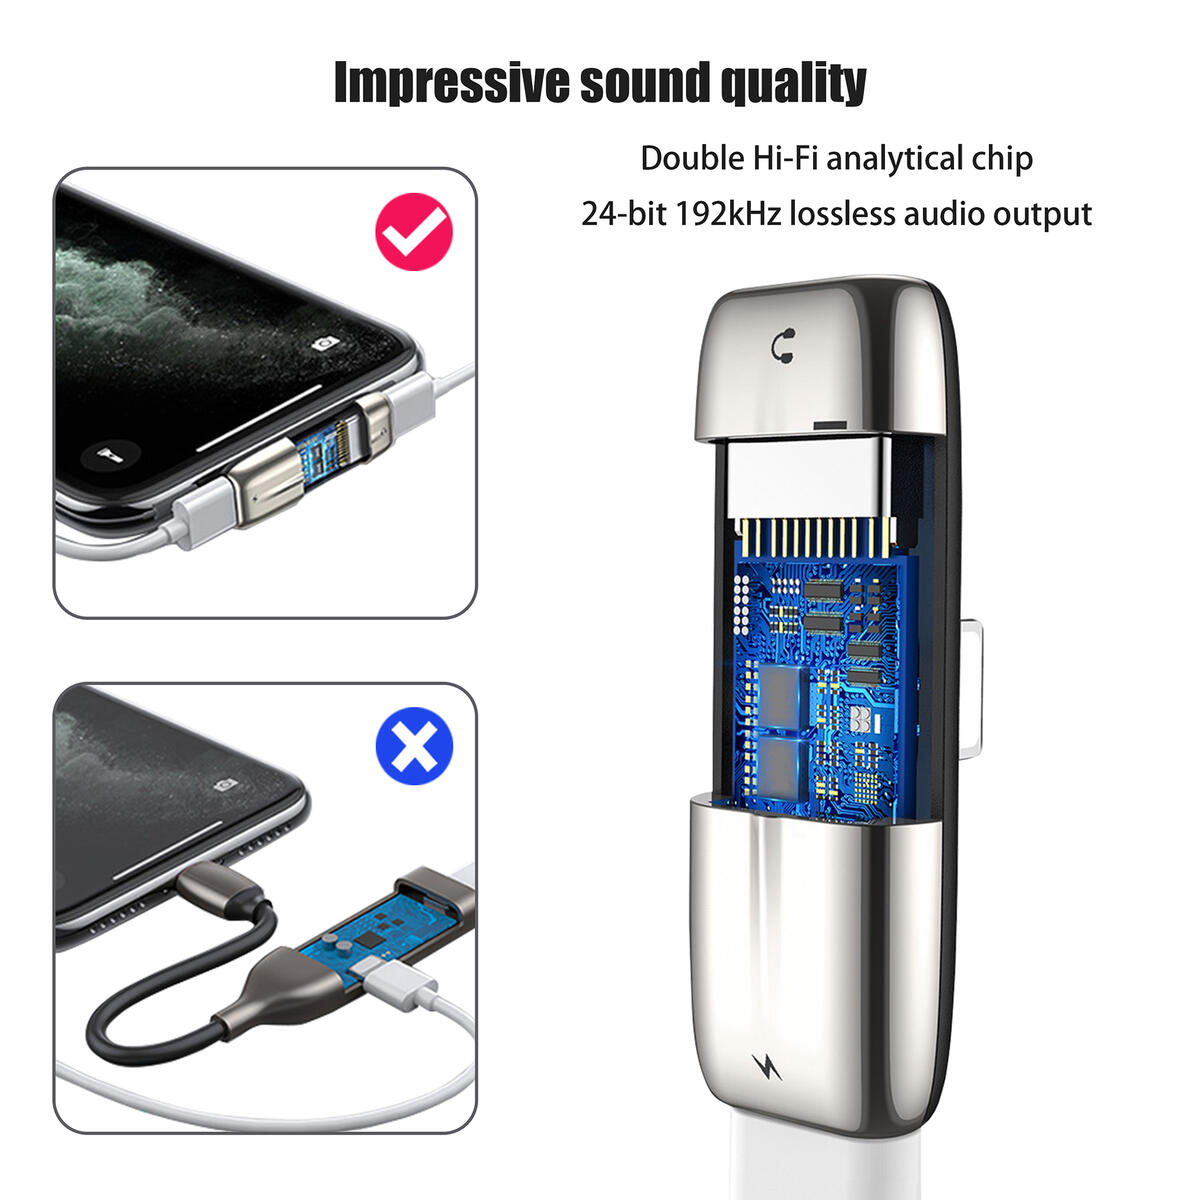 Phone Headphone Charger Splitter,Double Lighting Adapter,Lossless Audio/Fast Charging/Calling Sync Converter Connector,Music Headset Support,iPhone 7 8 7plus 8plus X Xs Max Xr 11 pro iPad Mini(Silver)